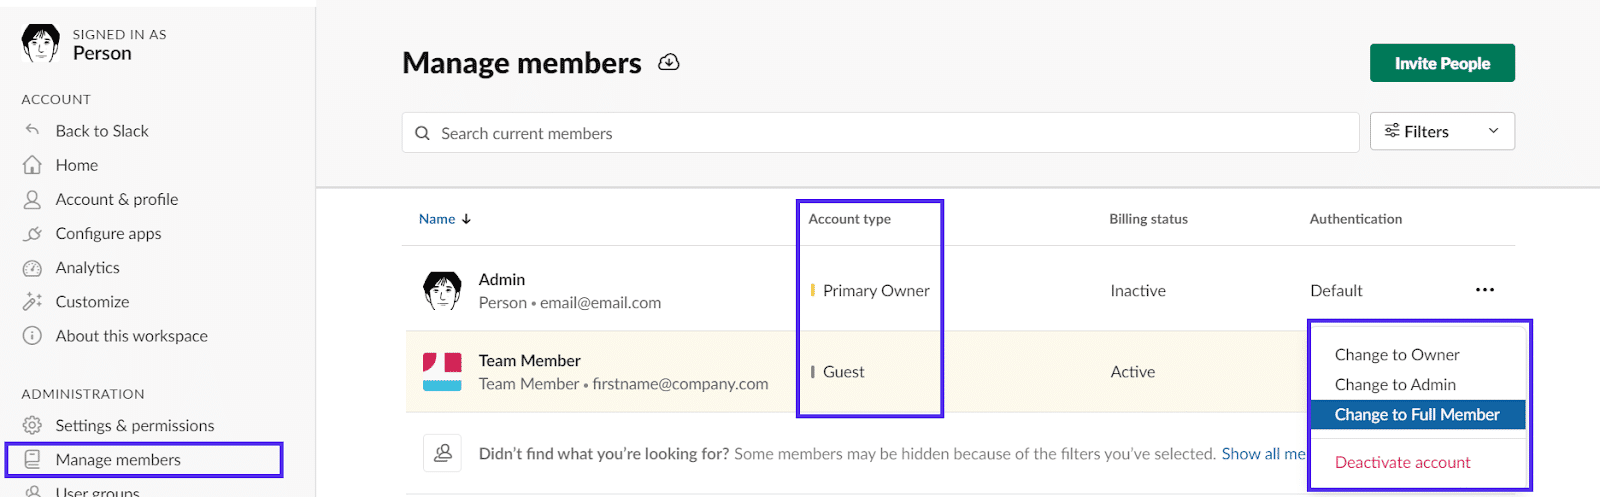 slack manage members credentials